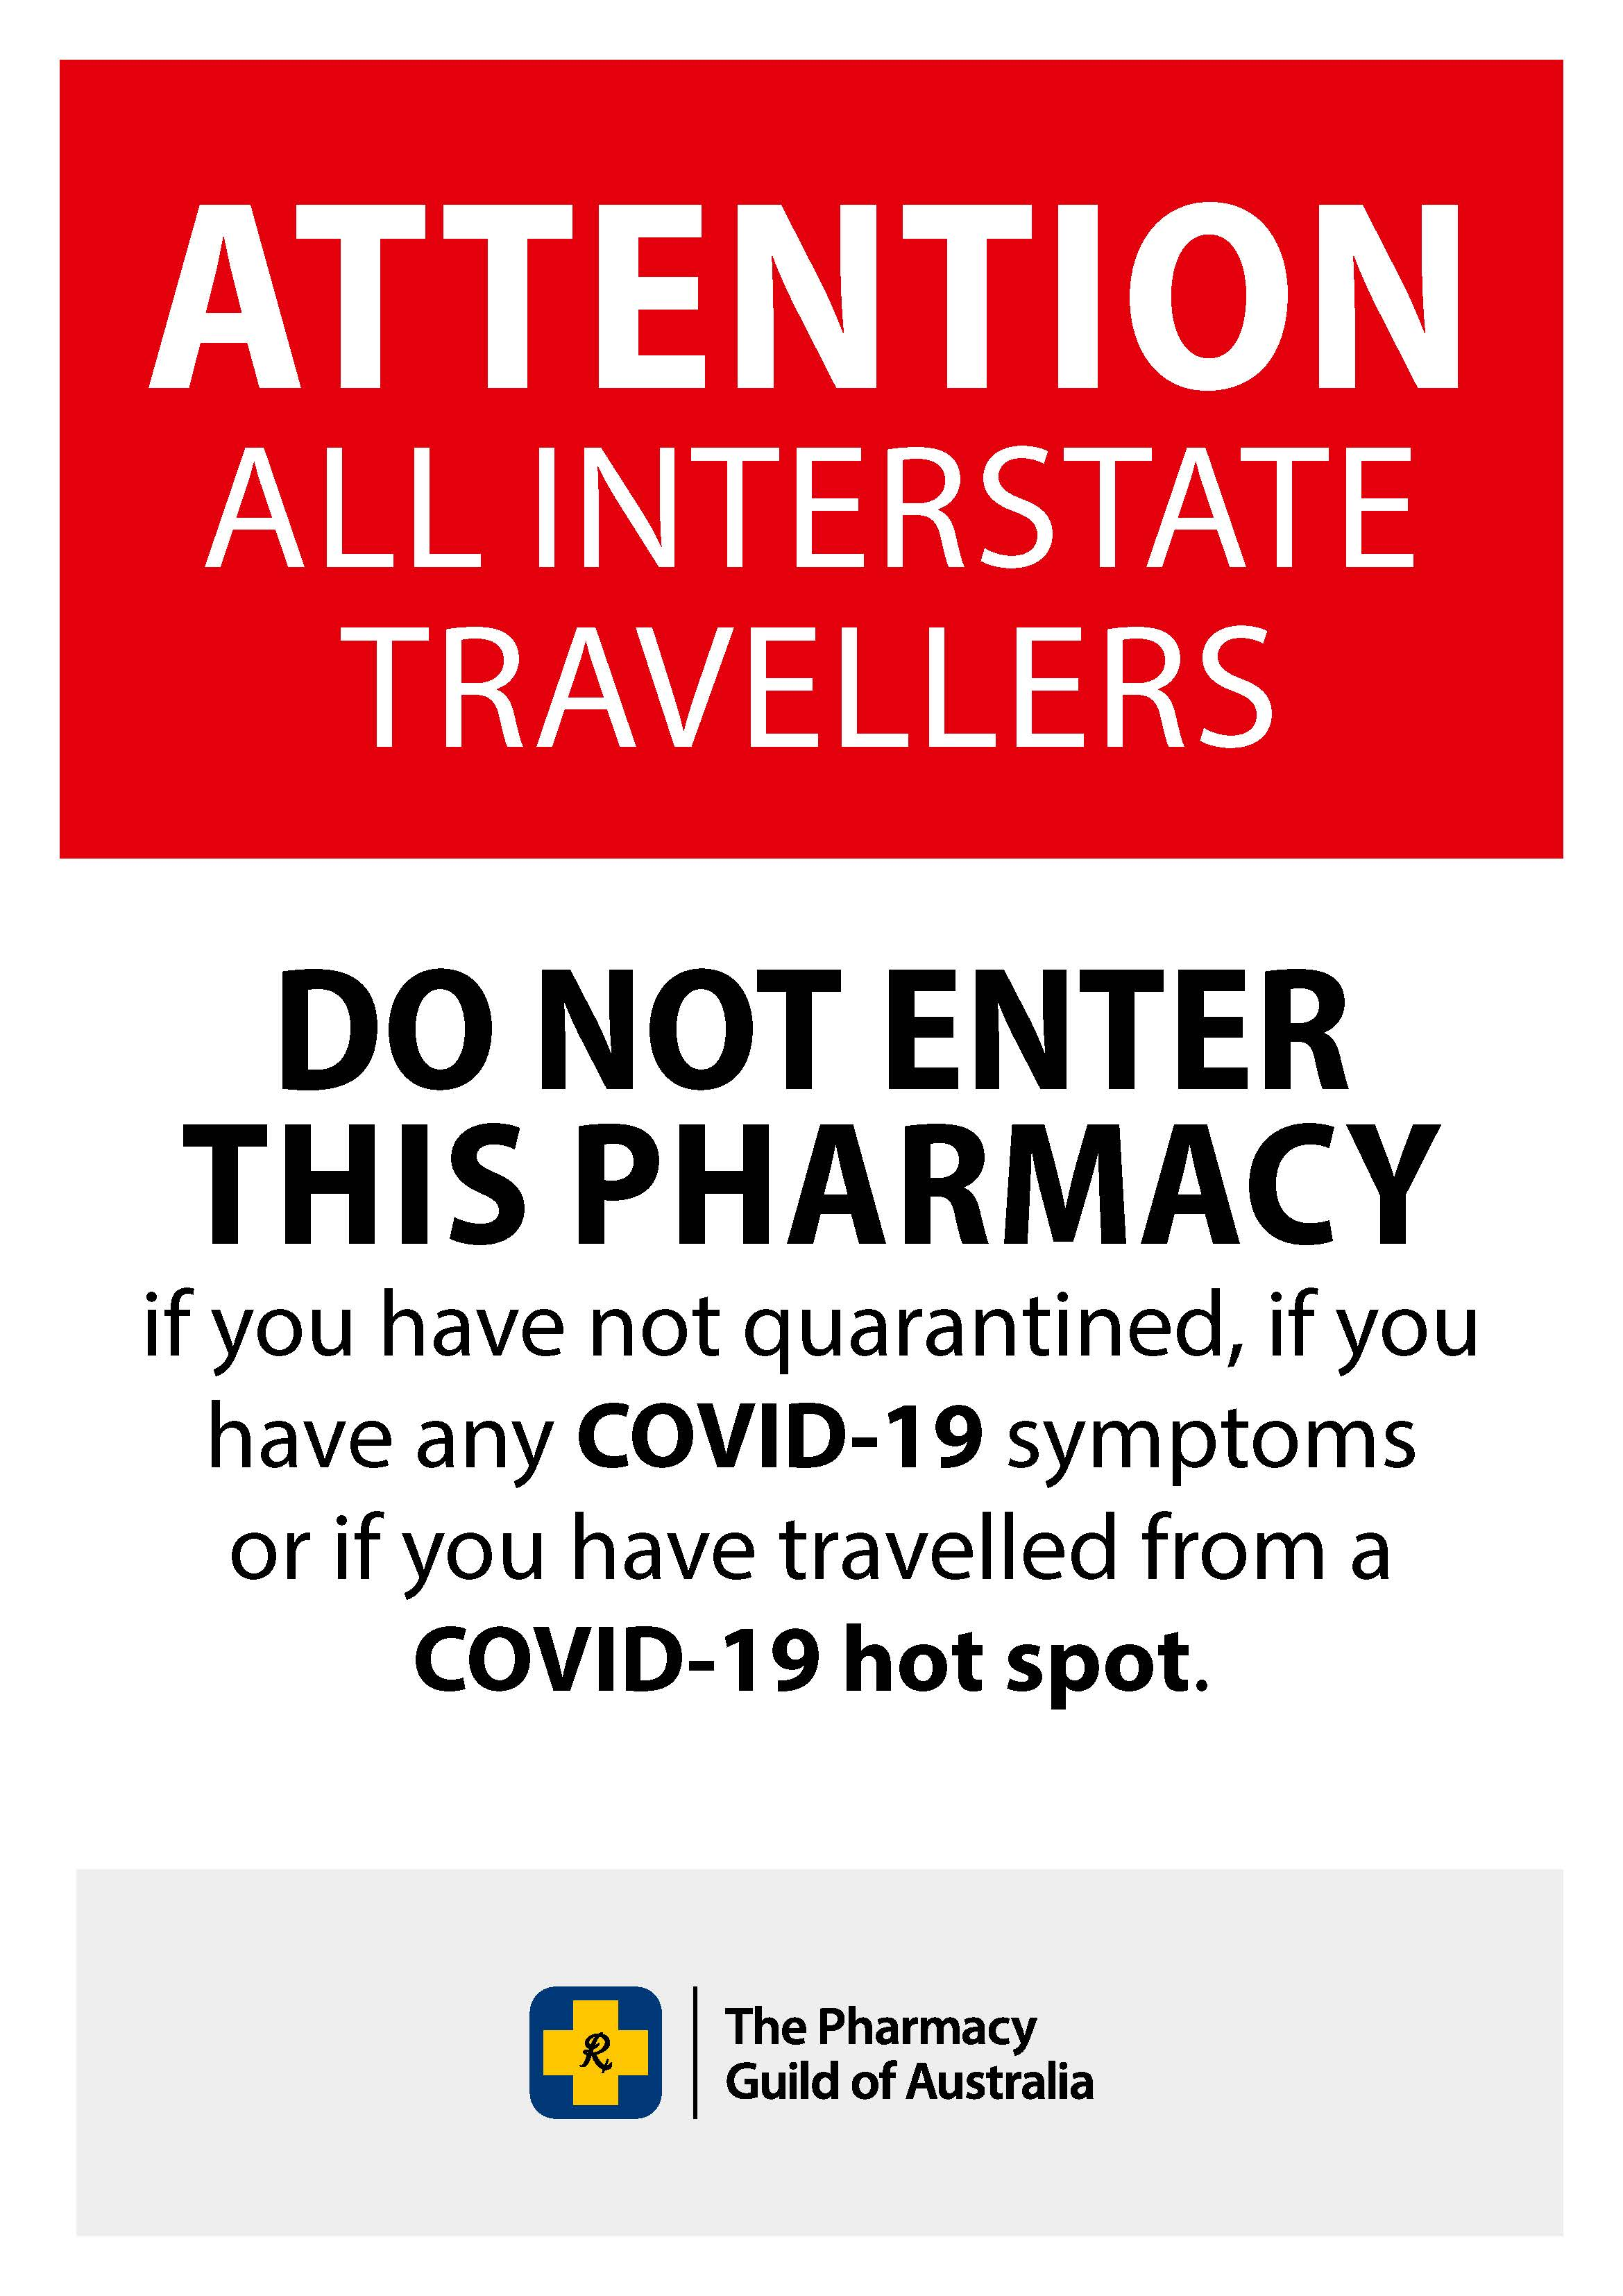 COVID-19 Poster 13 - Interstate Travellers